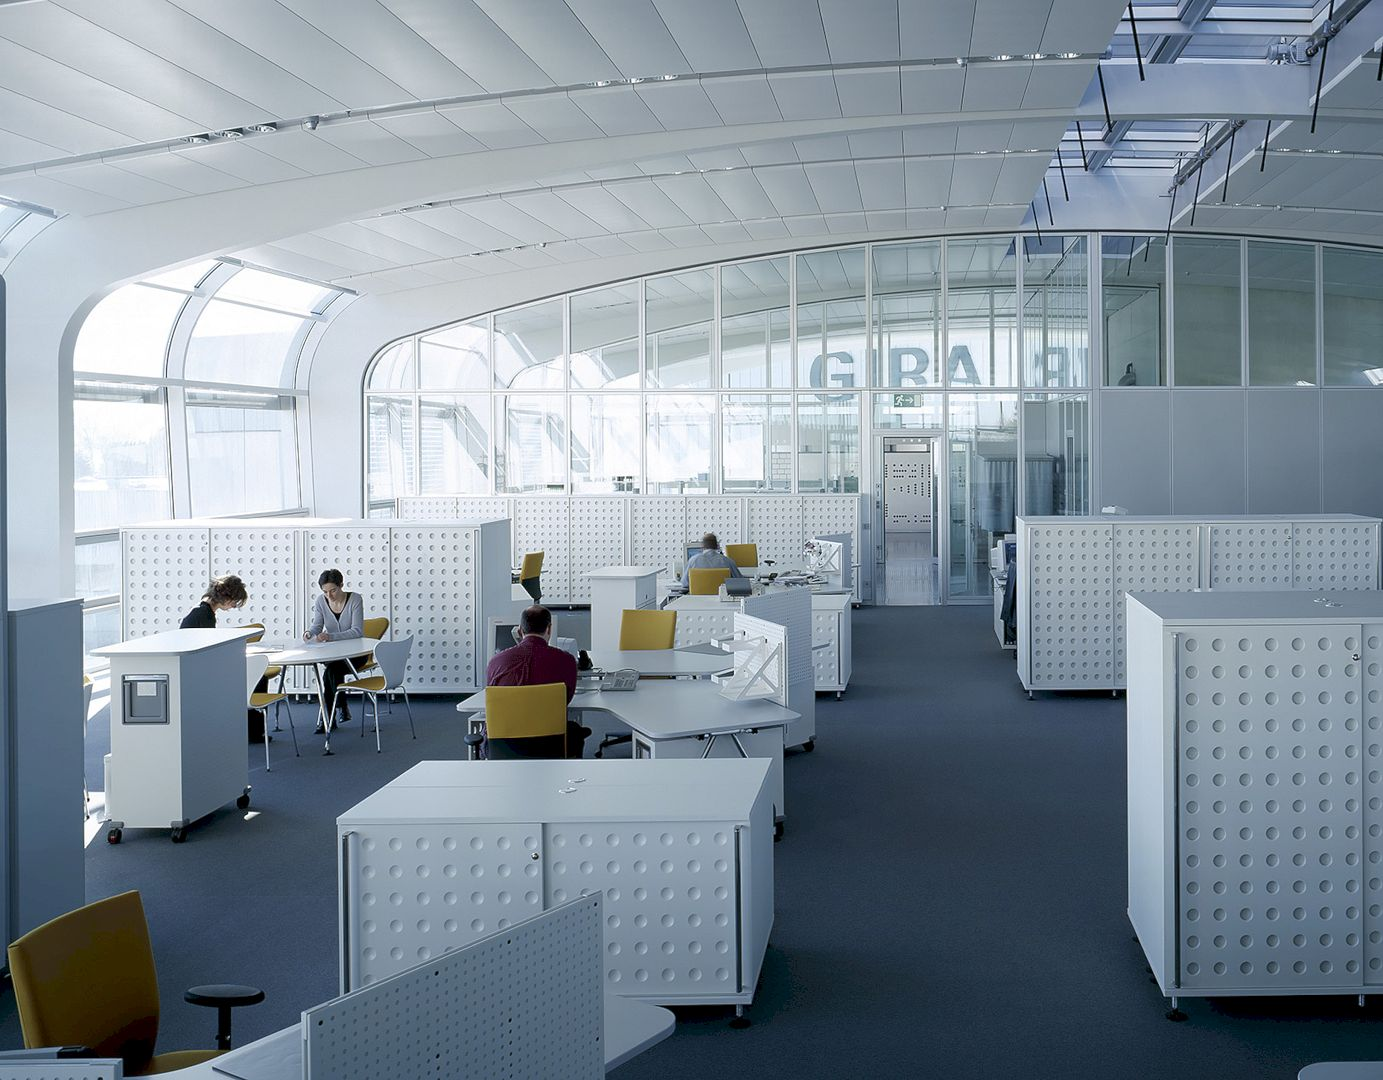 Gira Production Building By Ingenhoven Architects 4